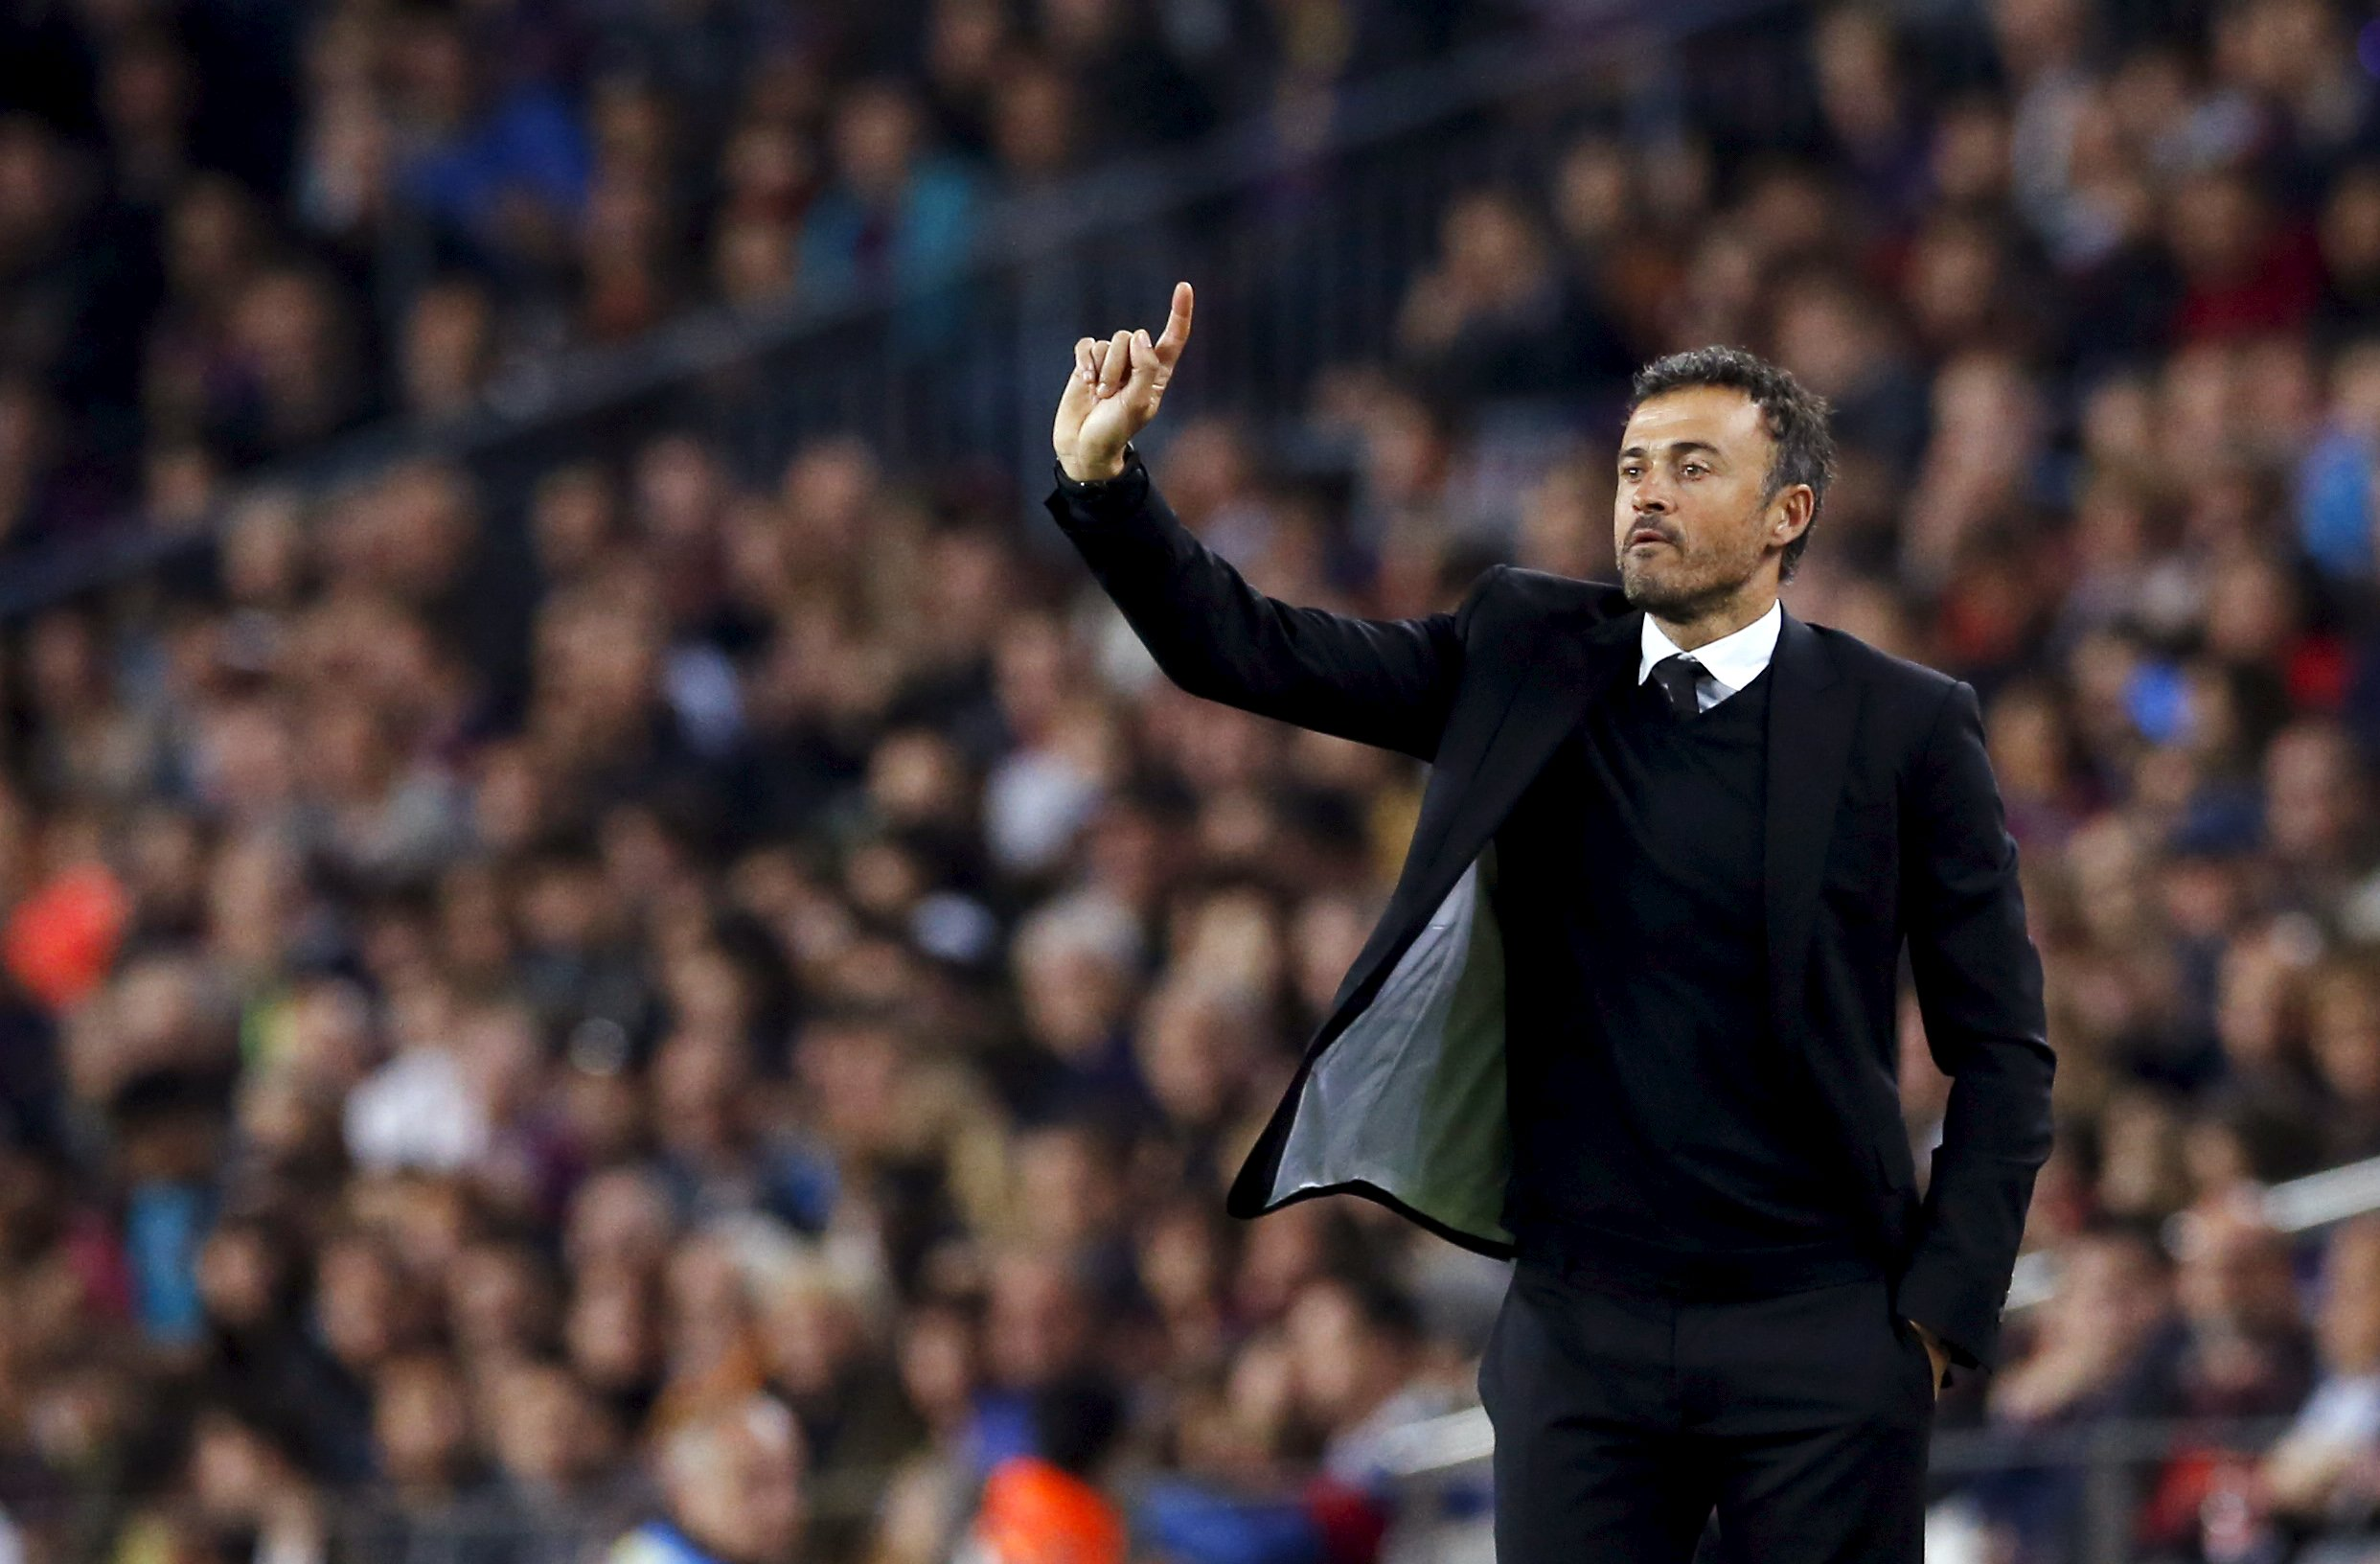 Barcelona's coach Luis Enrique gestures during their Spanish first division soccer match at Camp Nou stadium in Barcelona, Spain, October 25, 2015. REUTERS/Albert Gea